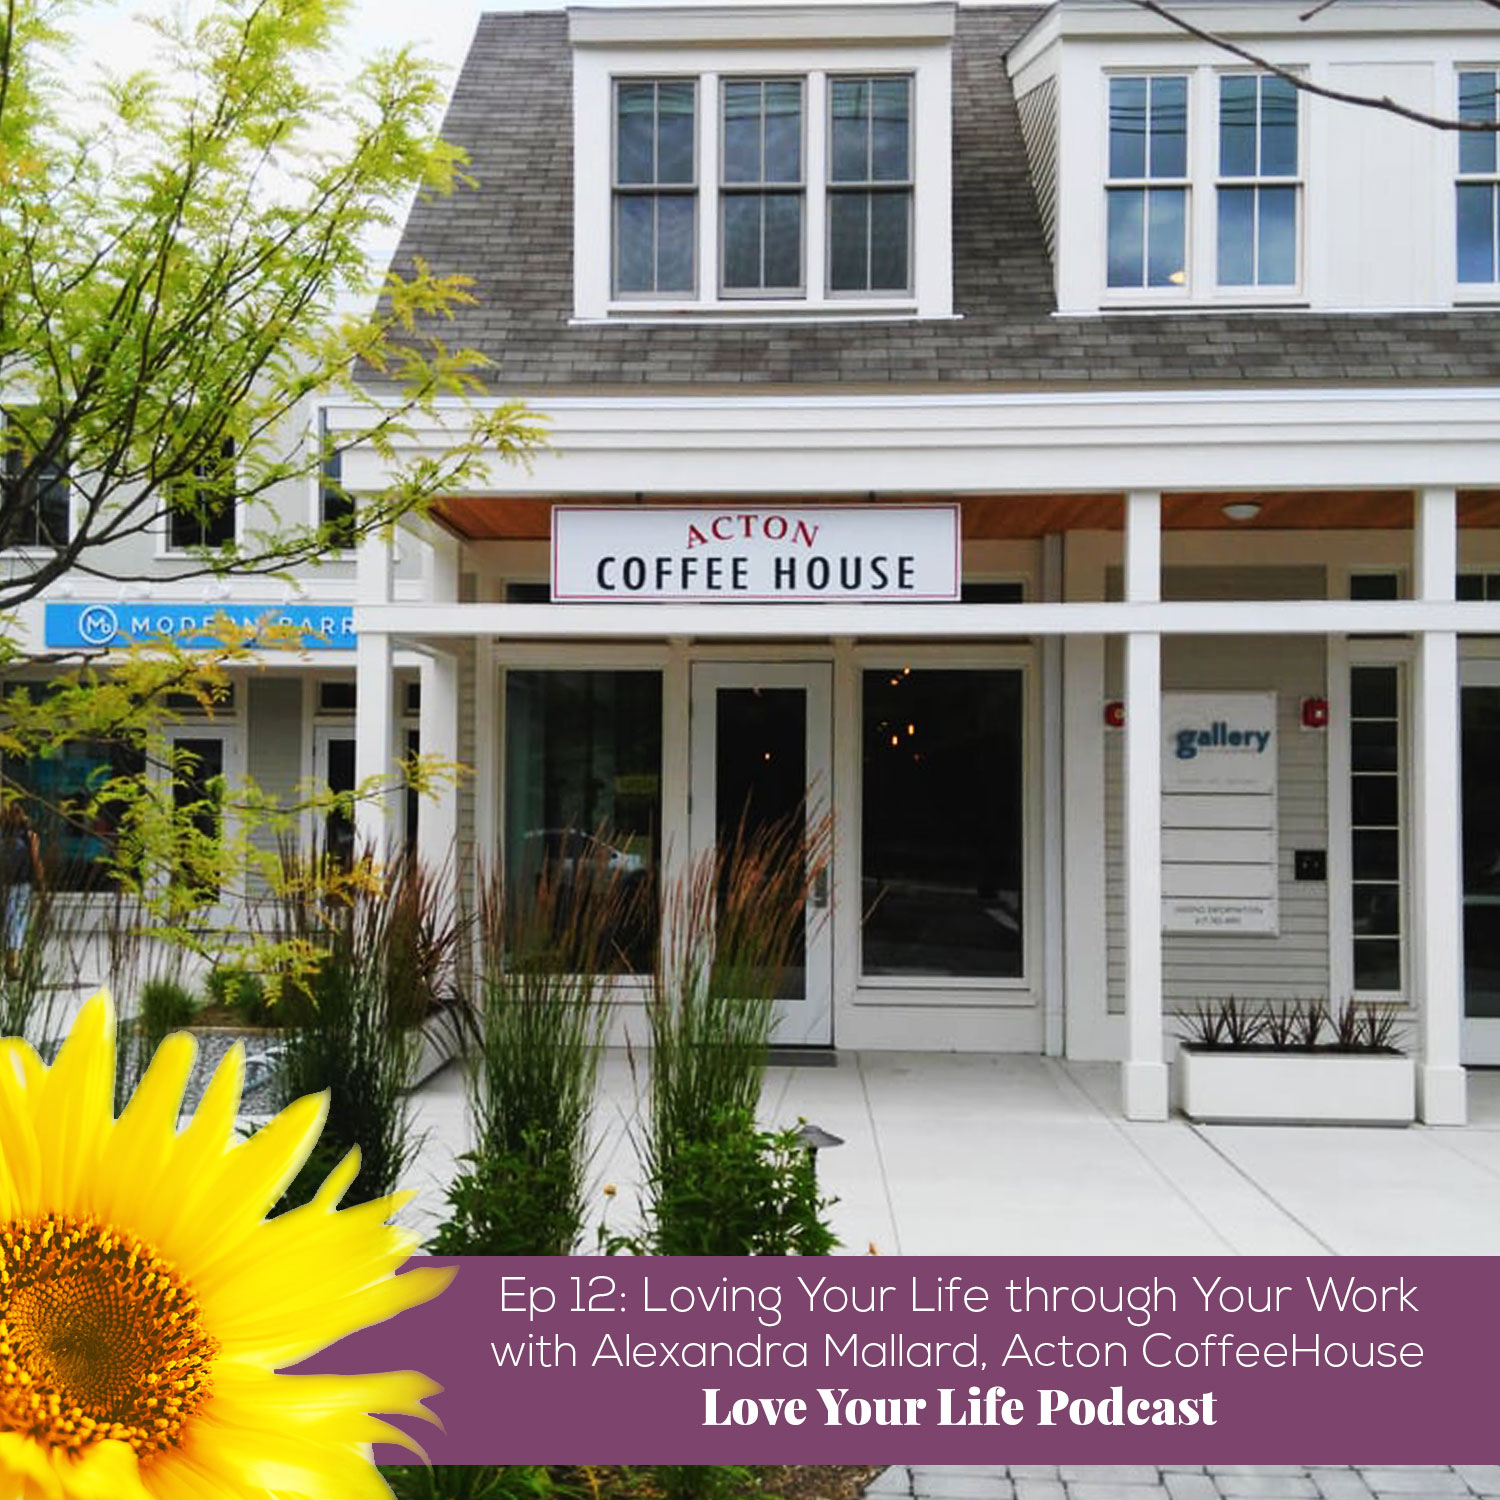 Loving Your Life through Your Work | Love Your Life Podcast with Dr. Pam Jarboe and Dr. Lauren Yeager